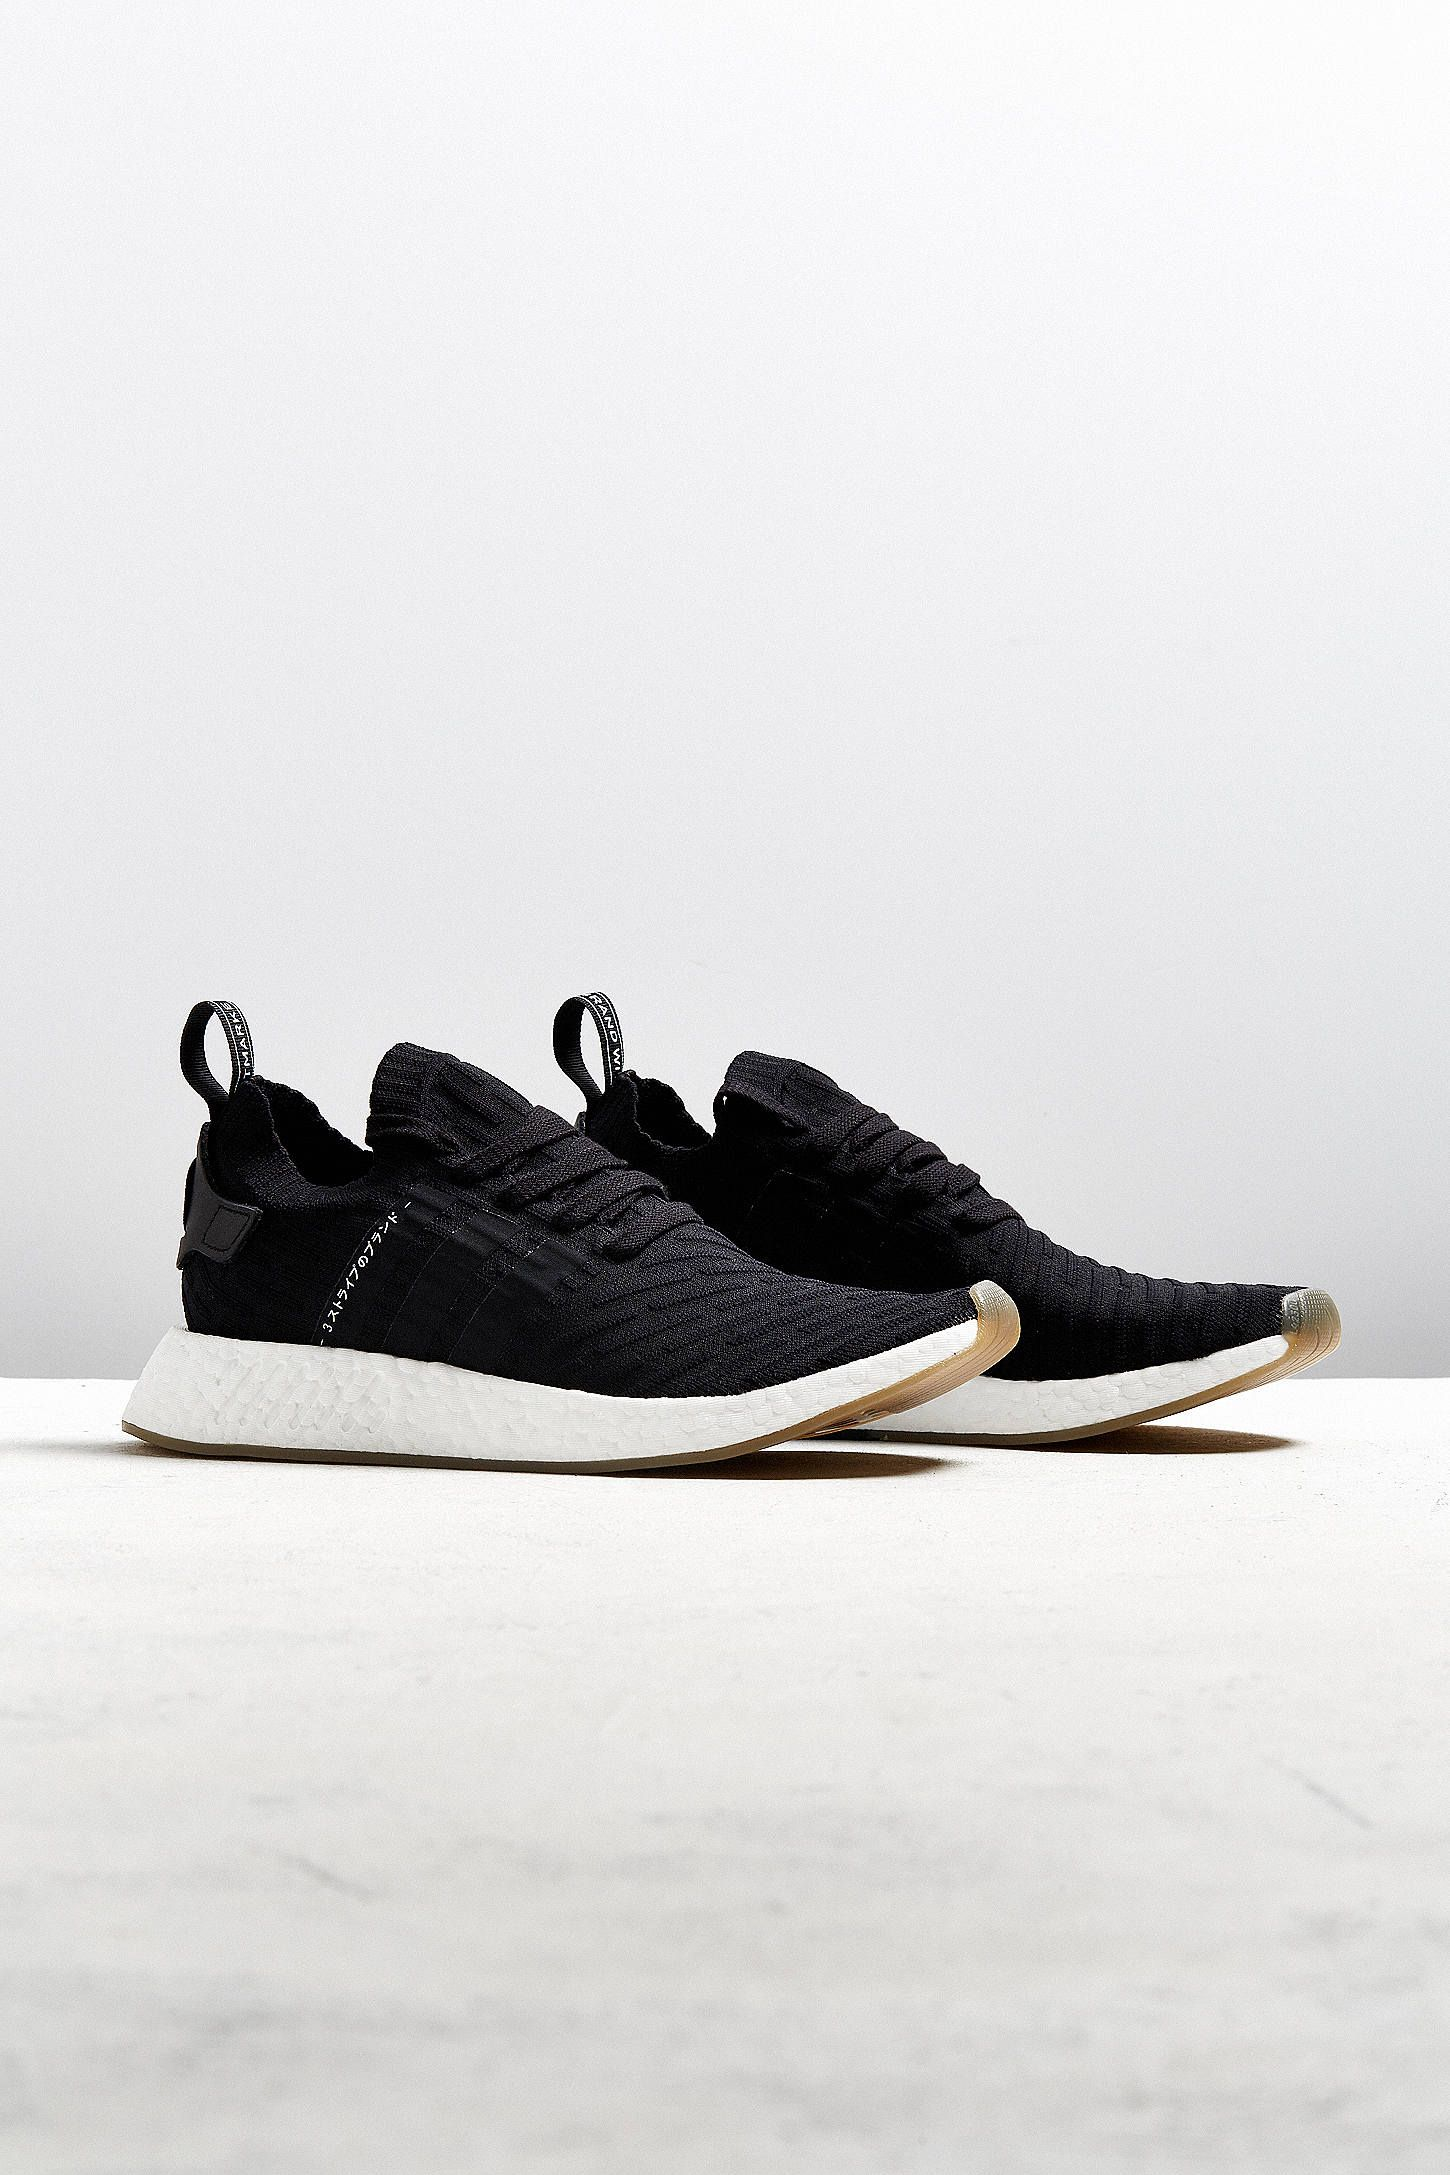 c74836f6f552 Shop adidas NMD R2 Primeknit Sneaker at Urban Outfitters today. We carry  all the latest styles